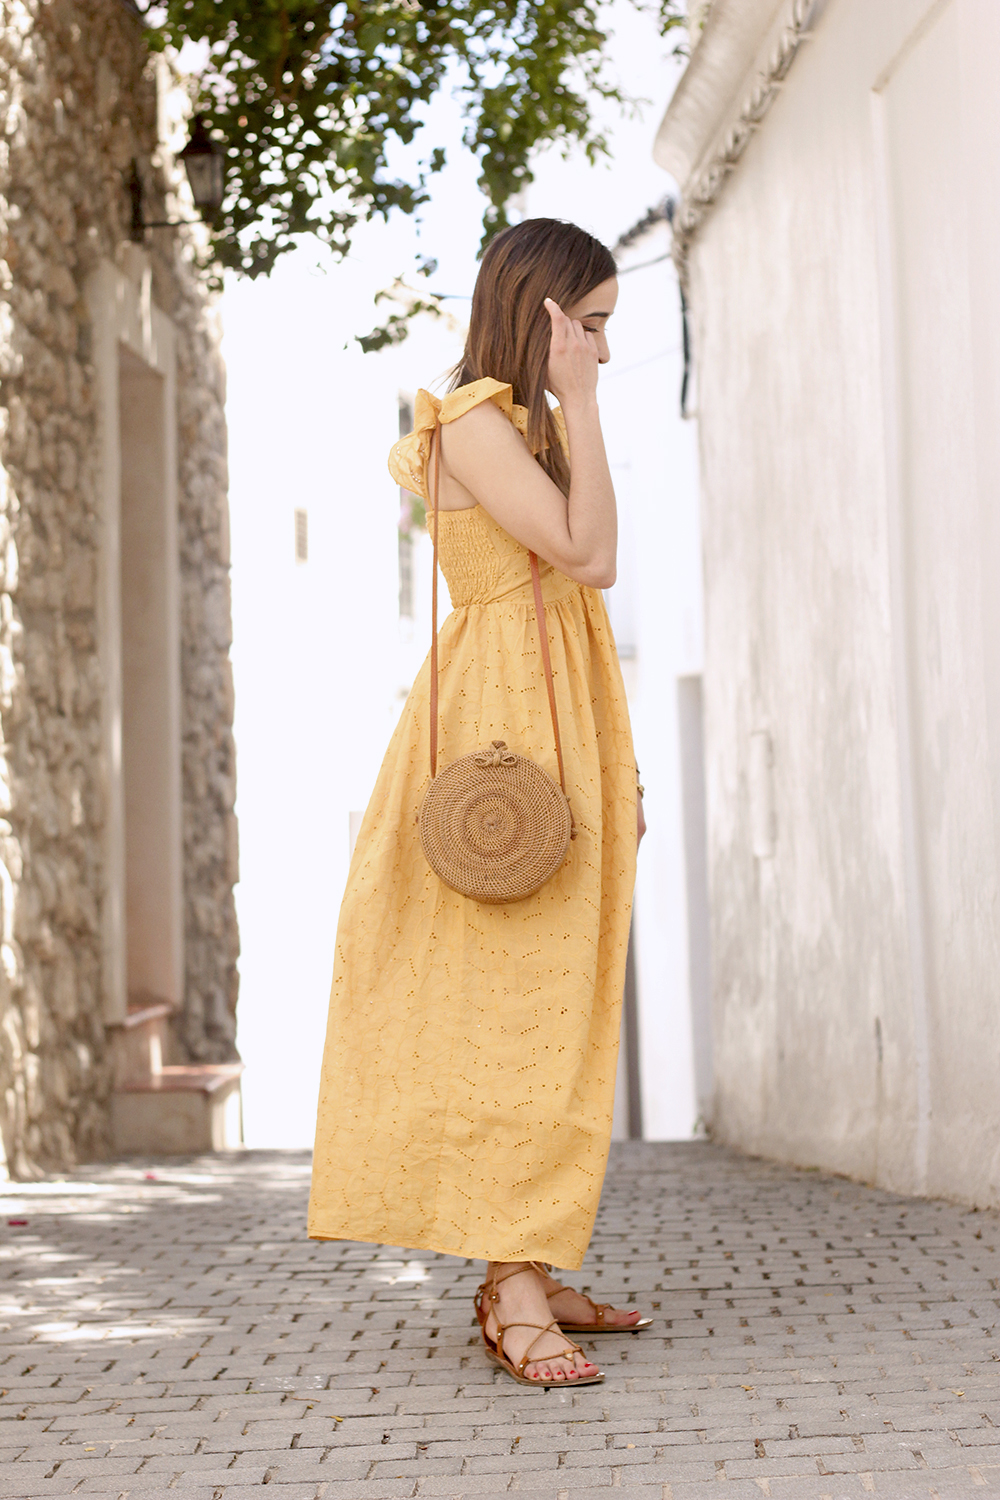 mustard embroidered midi dress straw bag street style outfit 2019 vacation ibiza6